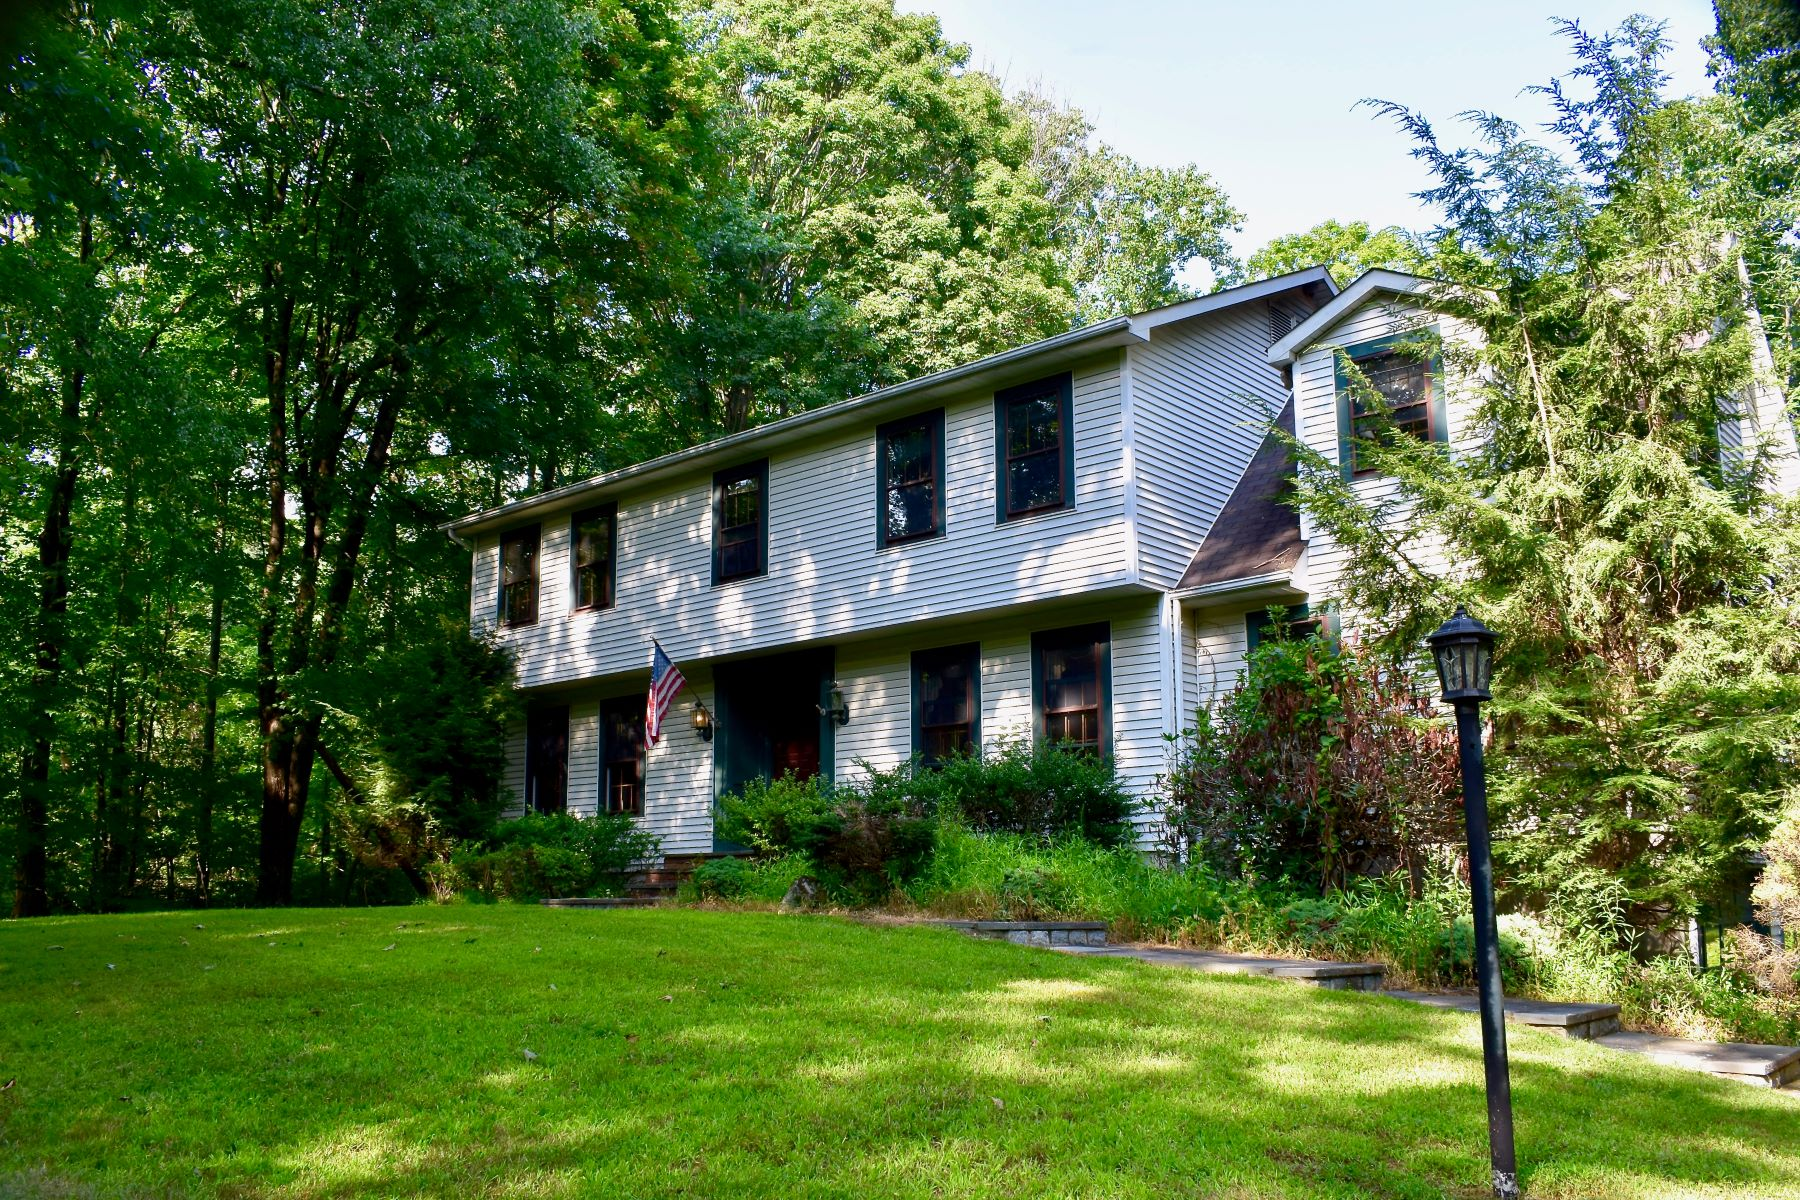 Single Family Homes for Sale at Western New Fairfield 3 Carriage Lane New Fairfield, Connecticut 06812 United States